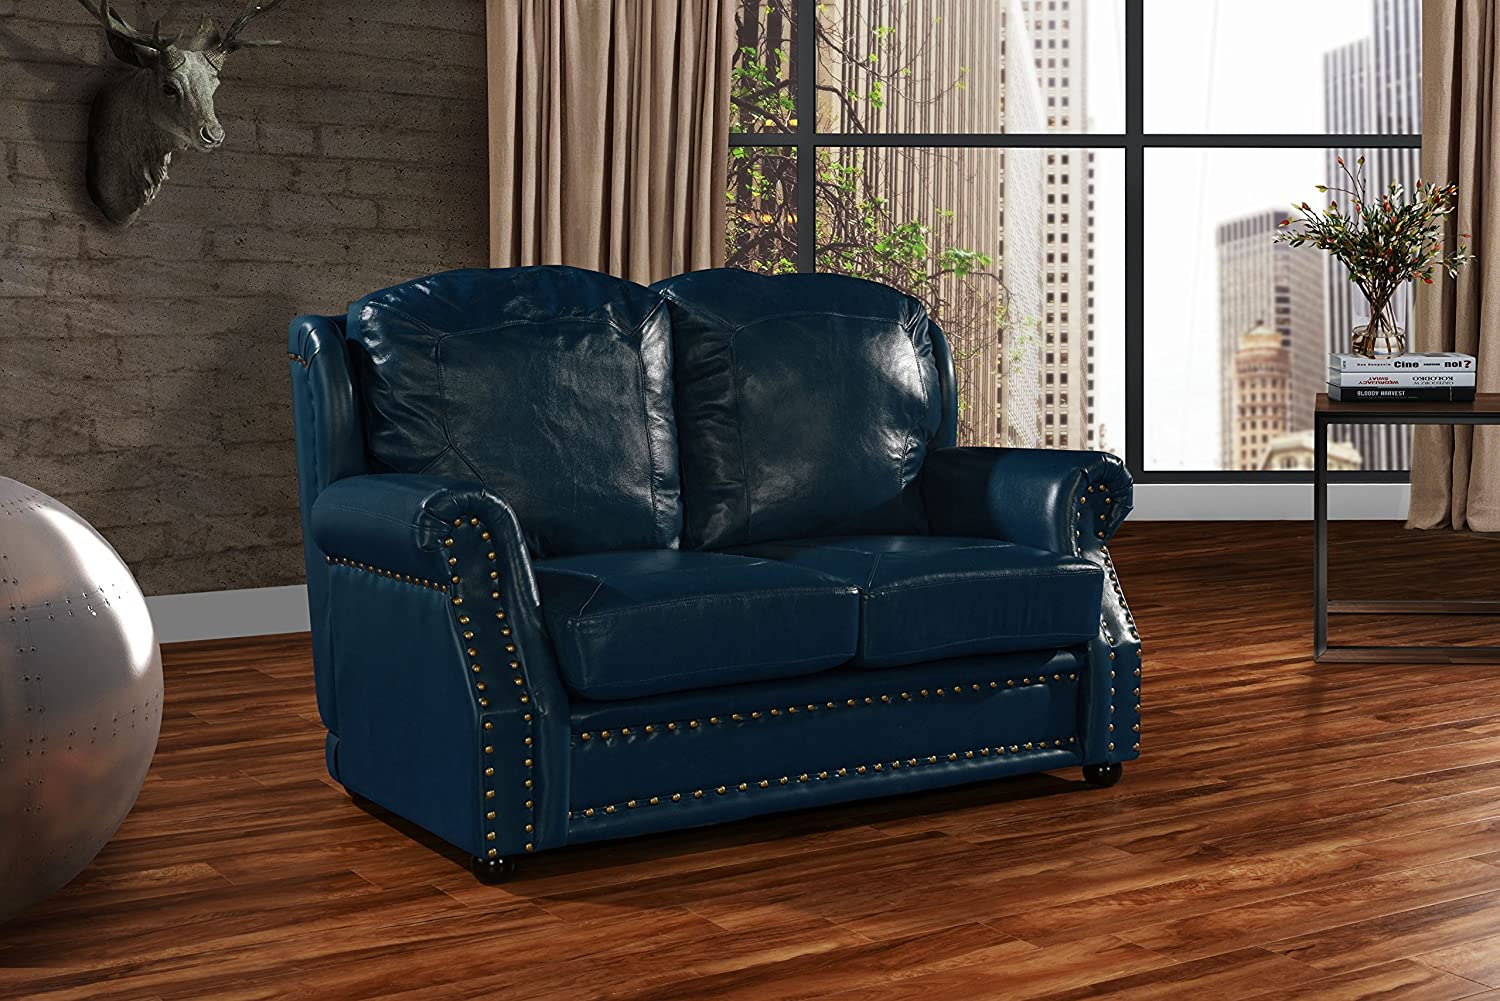 Leather Sofa 2 Seater, Living Room Couch Loveseat with Nailhead Trim (Blue